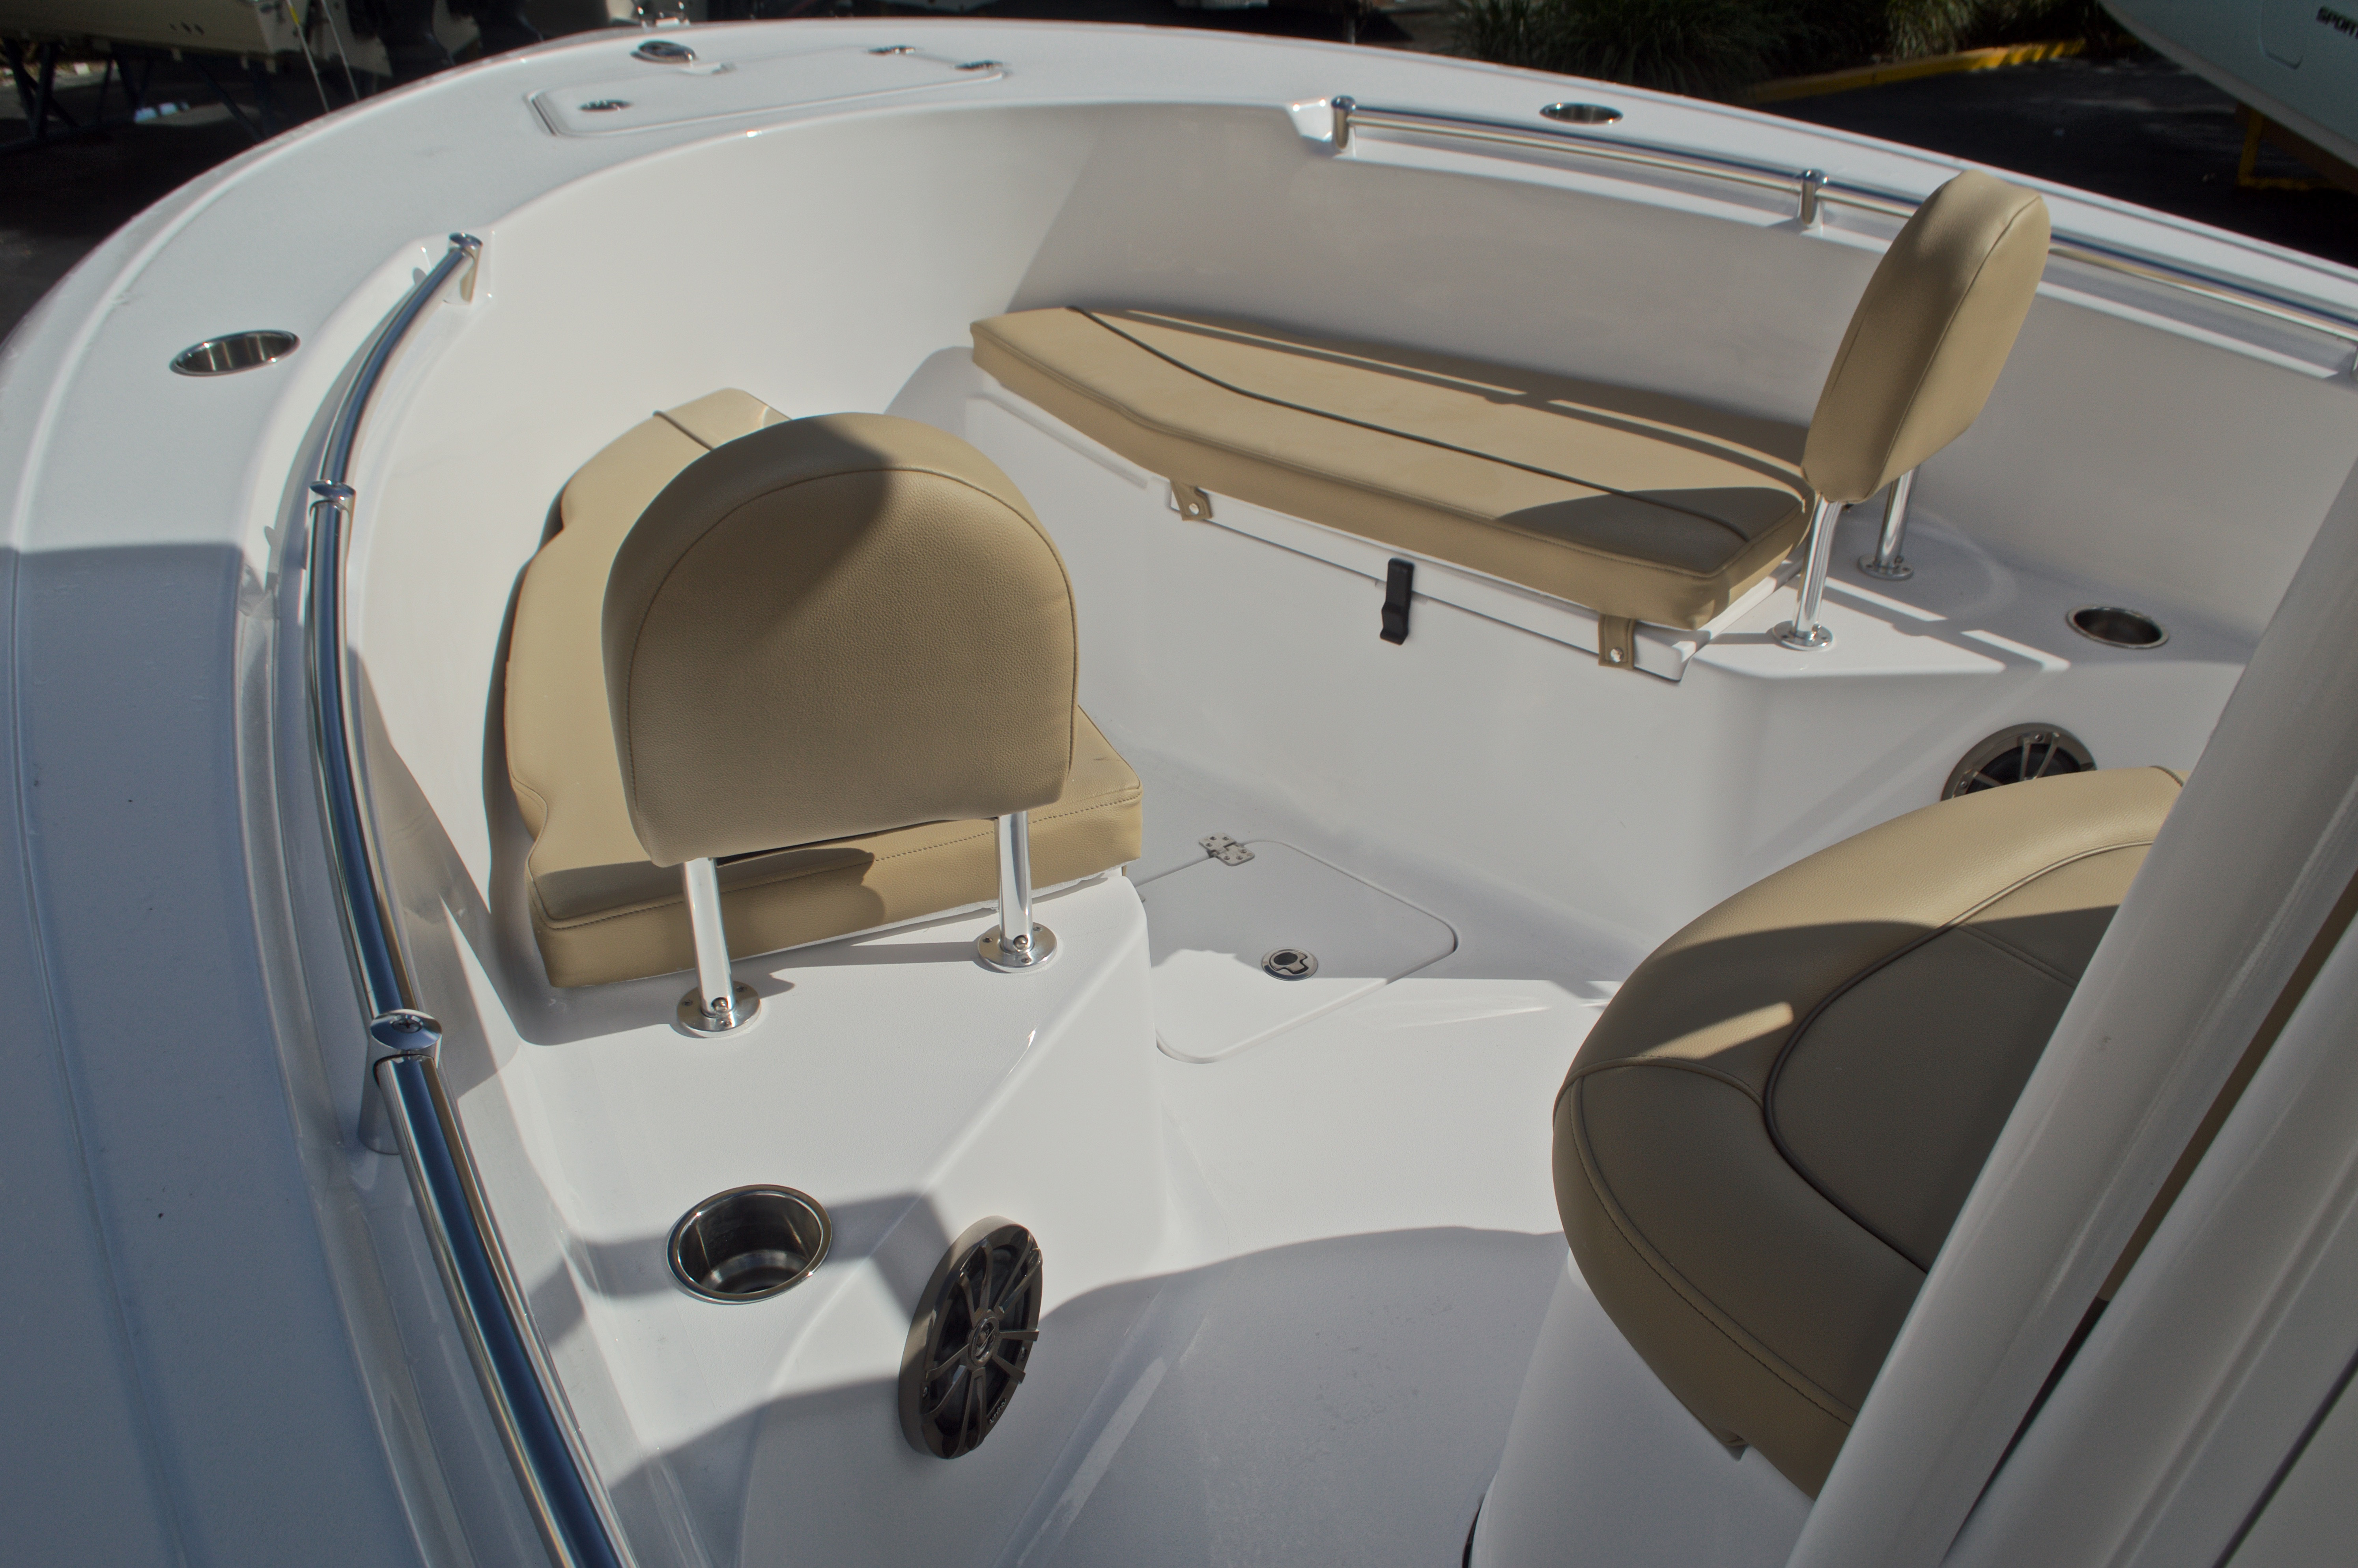 Thumbnail 43 for New 2017 Sportsman Open 212 Center Console boat for sale in West Palm Beach, FL